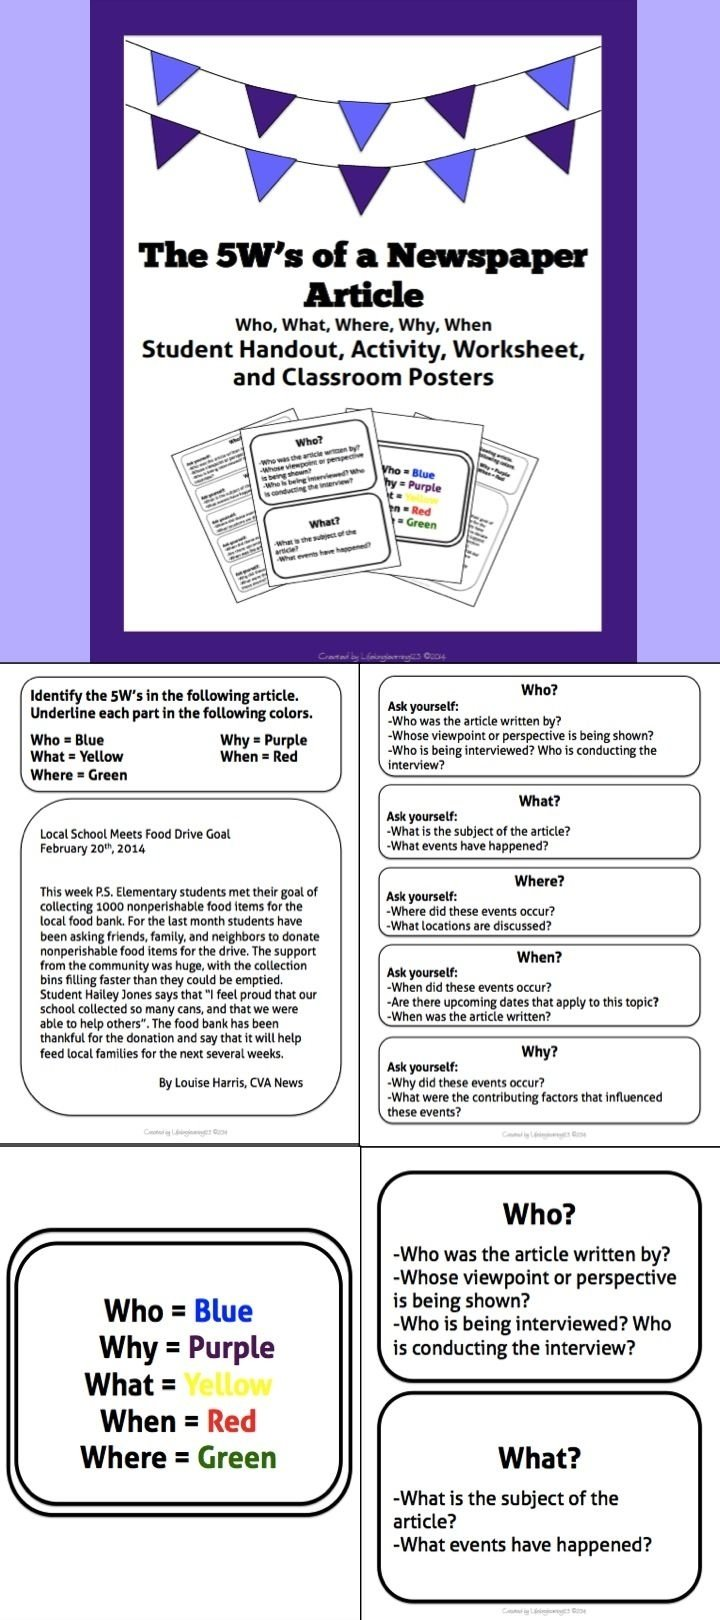 10 Attractive Middle School Newspaper Article Ideas